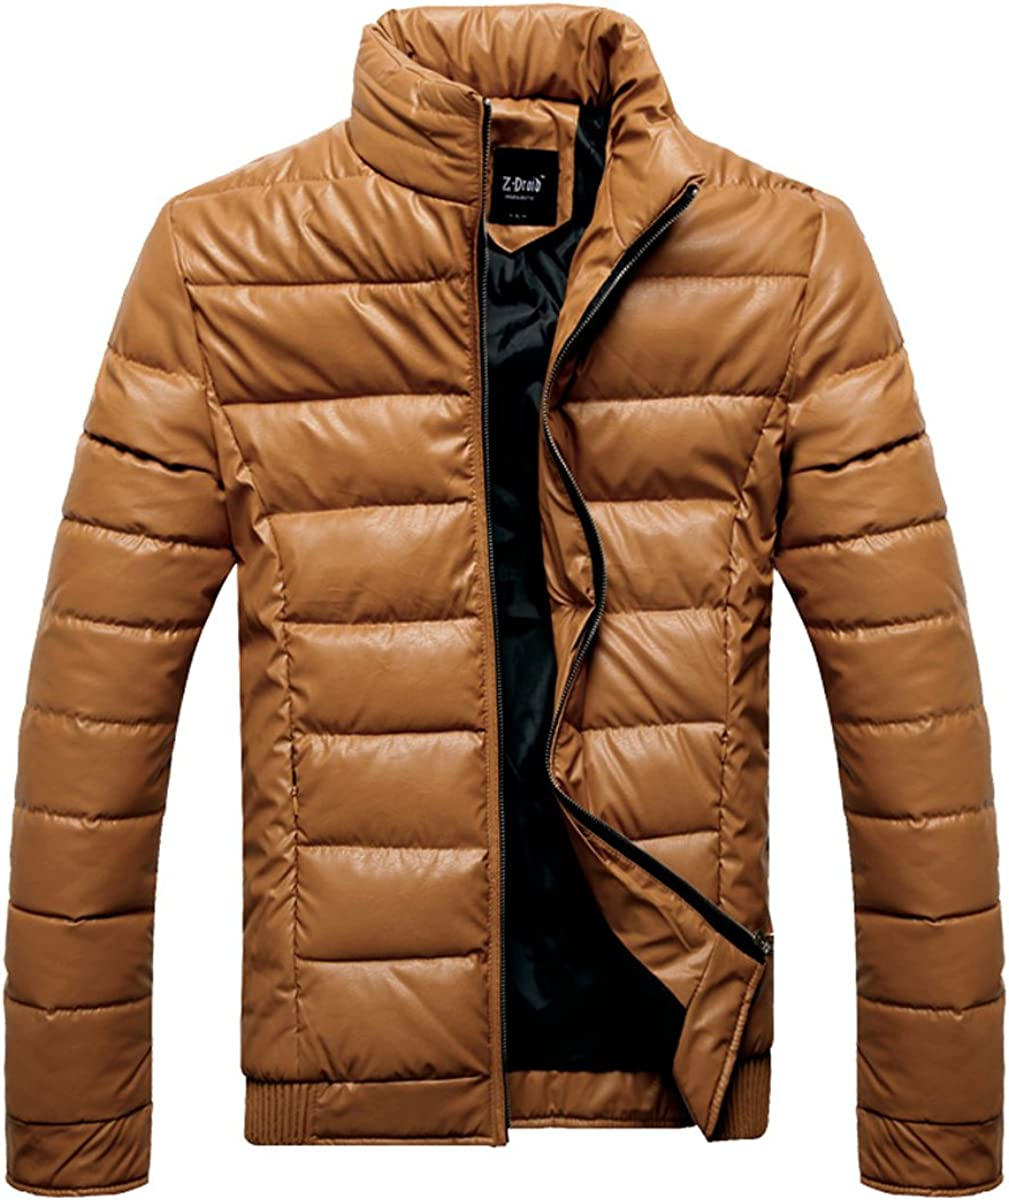 FOURSTEEDS Mens Faux Leather Light Weight Solid Color Zipper Winter Parka Down Jacket Coat